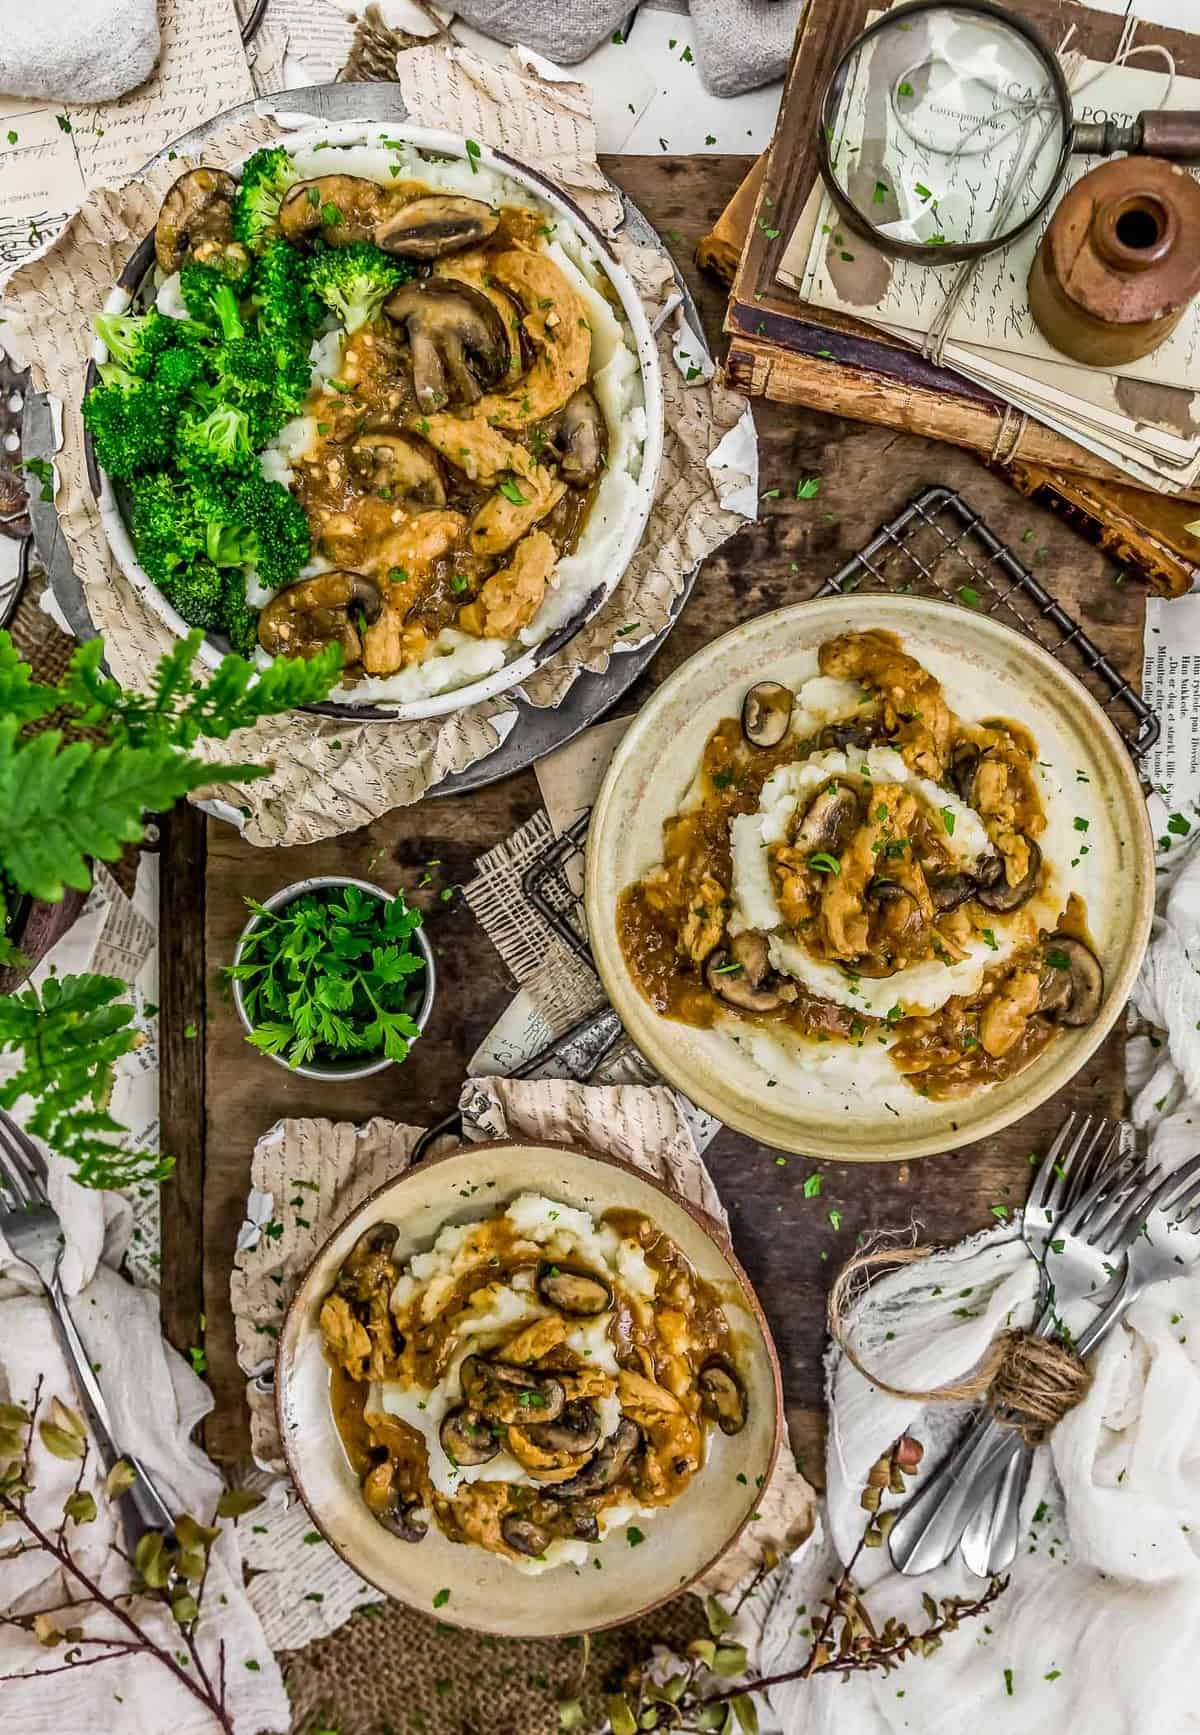 Tablescape of Vegan Salisbury Steak